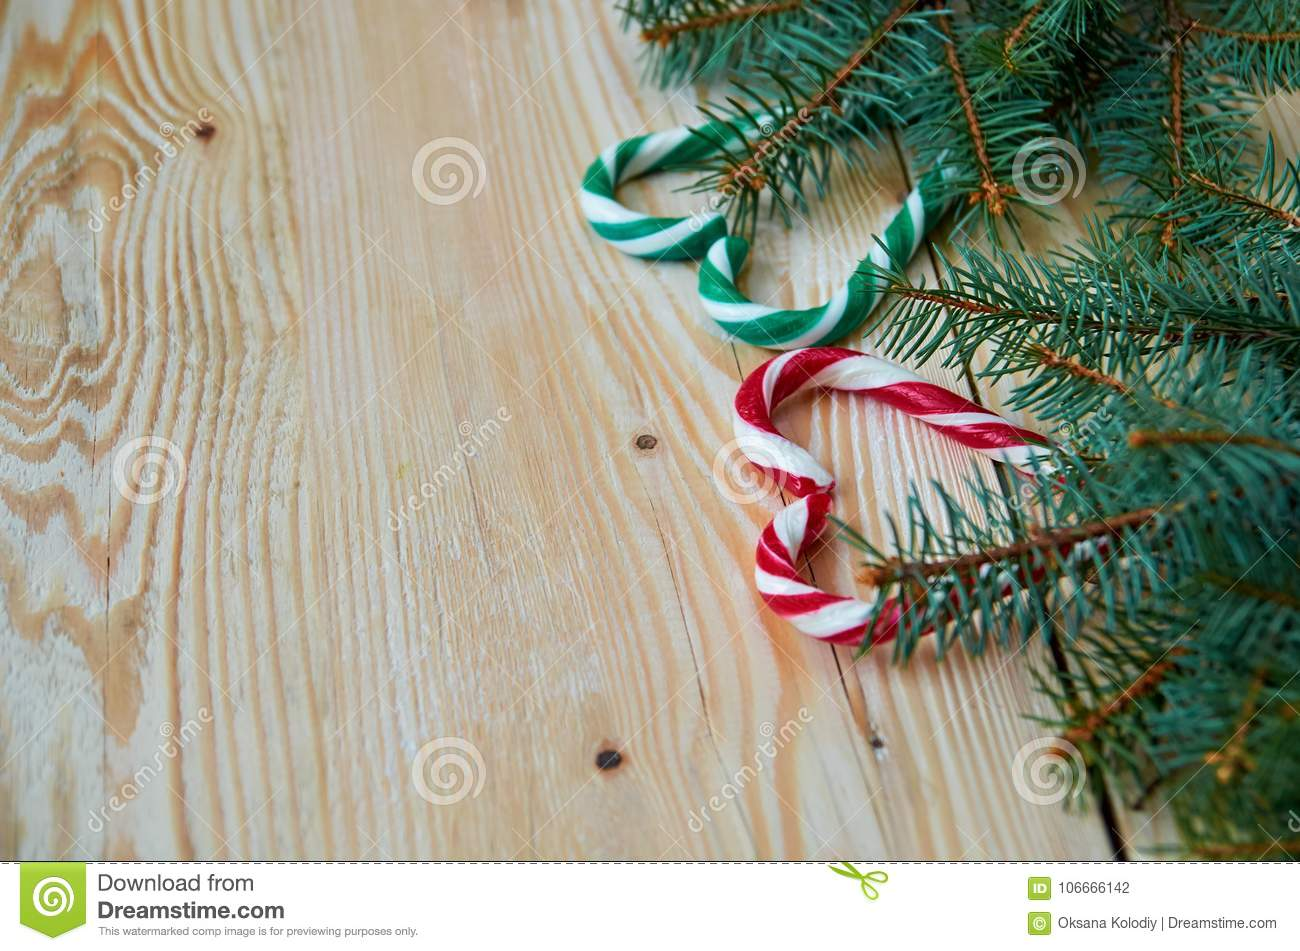 Green Red Hearts Of Candy Cones With Christmas Tree Branches On The Right Side New Year Or Valentines Day Sweets Decorations Stock Photo Image Of Love Cones 106666142